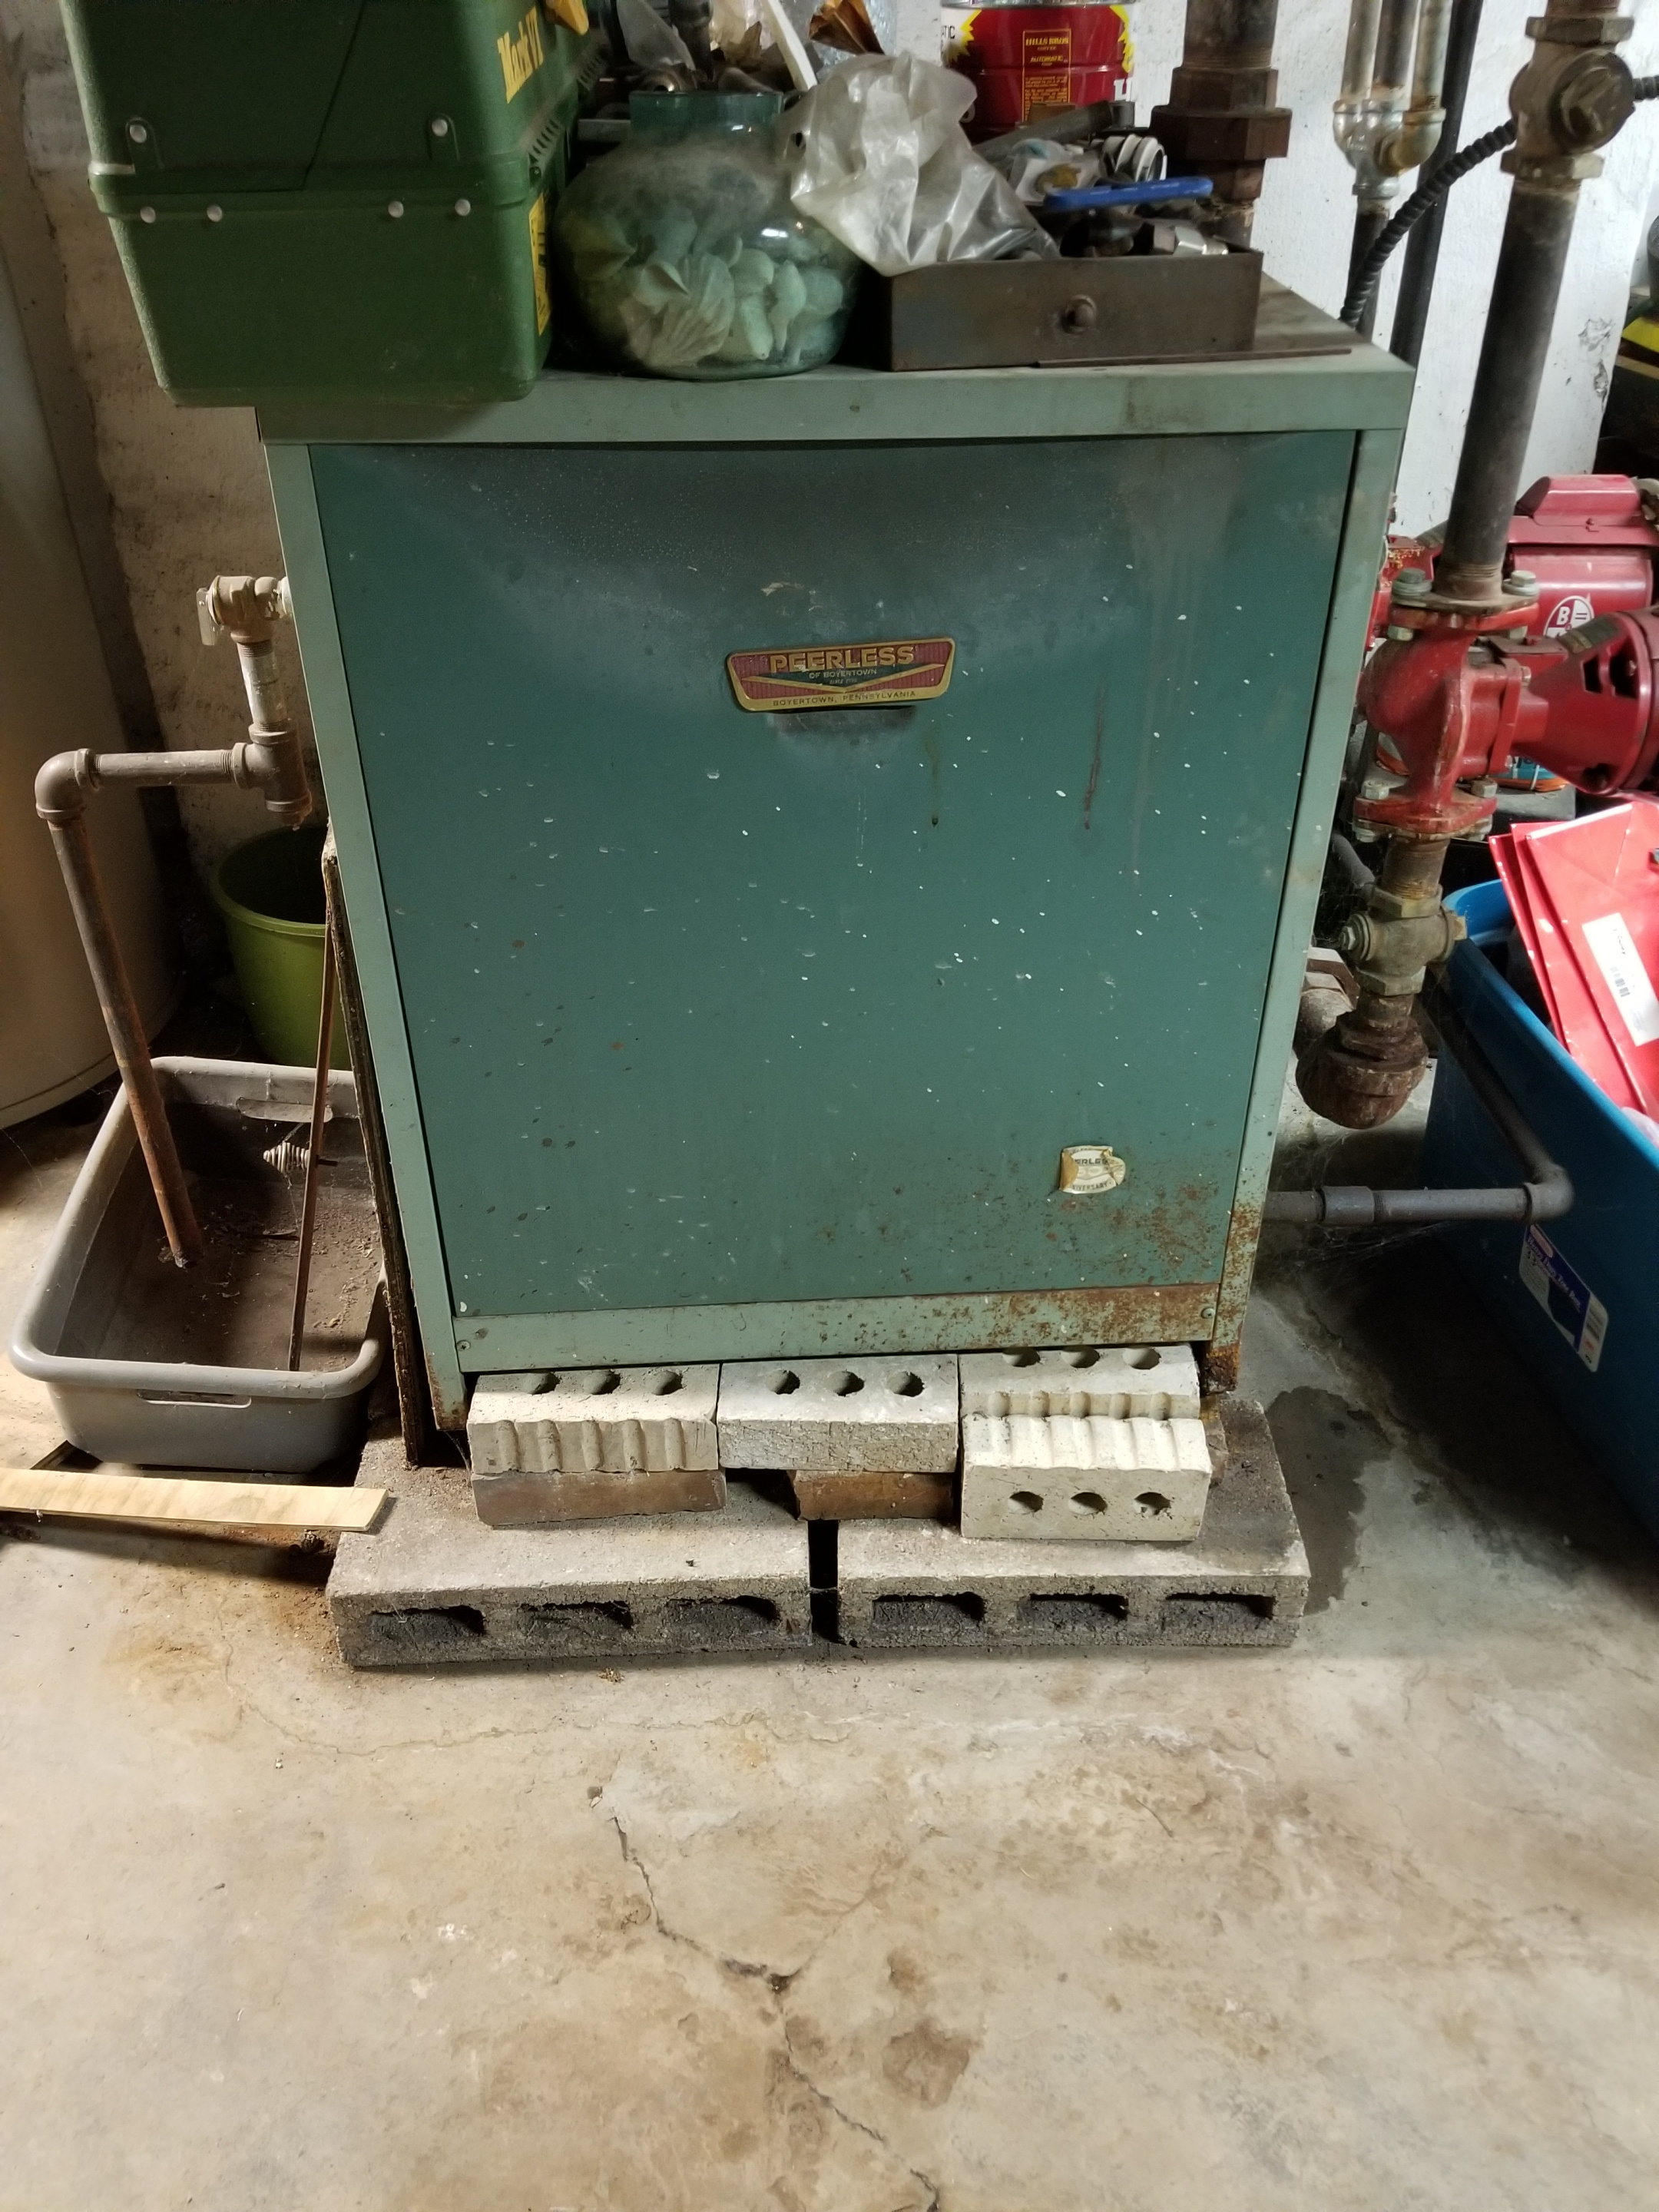 Recommended replacement of this old Peerless boiler for a new, high efficiency modern boiler.